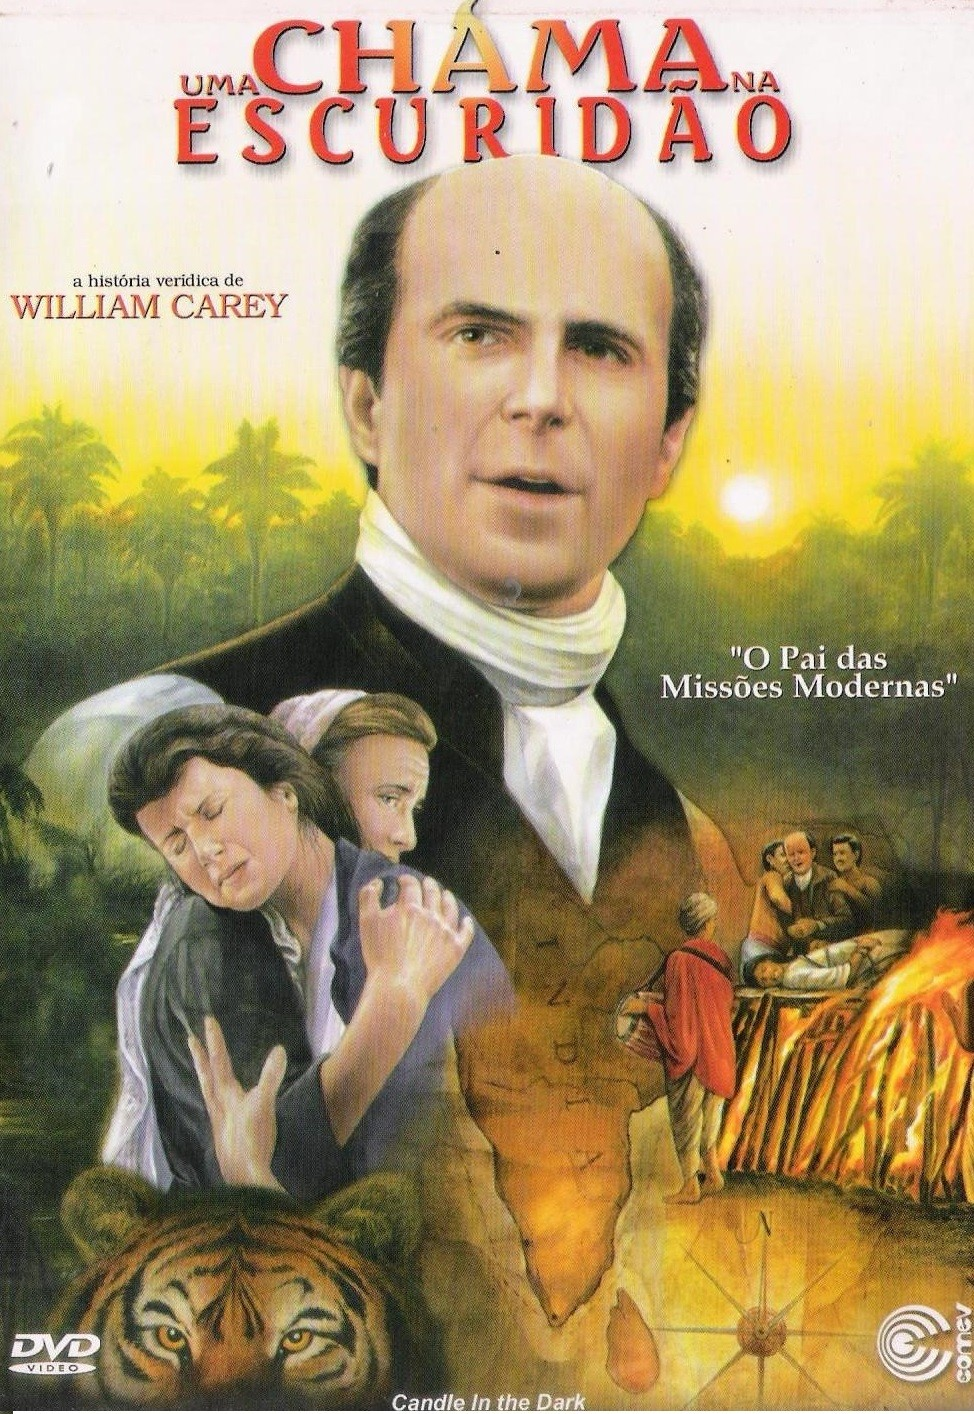 DVD UMA CHAMA NA ESCURIDAO A HISTORIA VERIDICA DE WILLIAM CAREY - AUDIO EM PORTUGUES